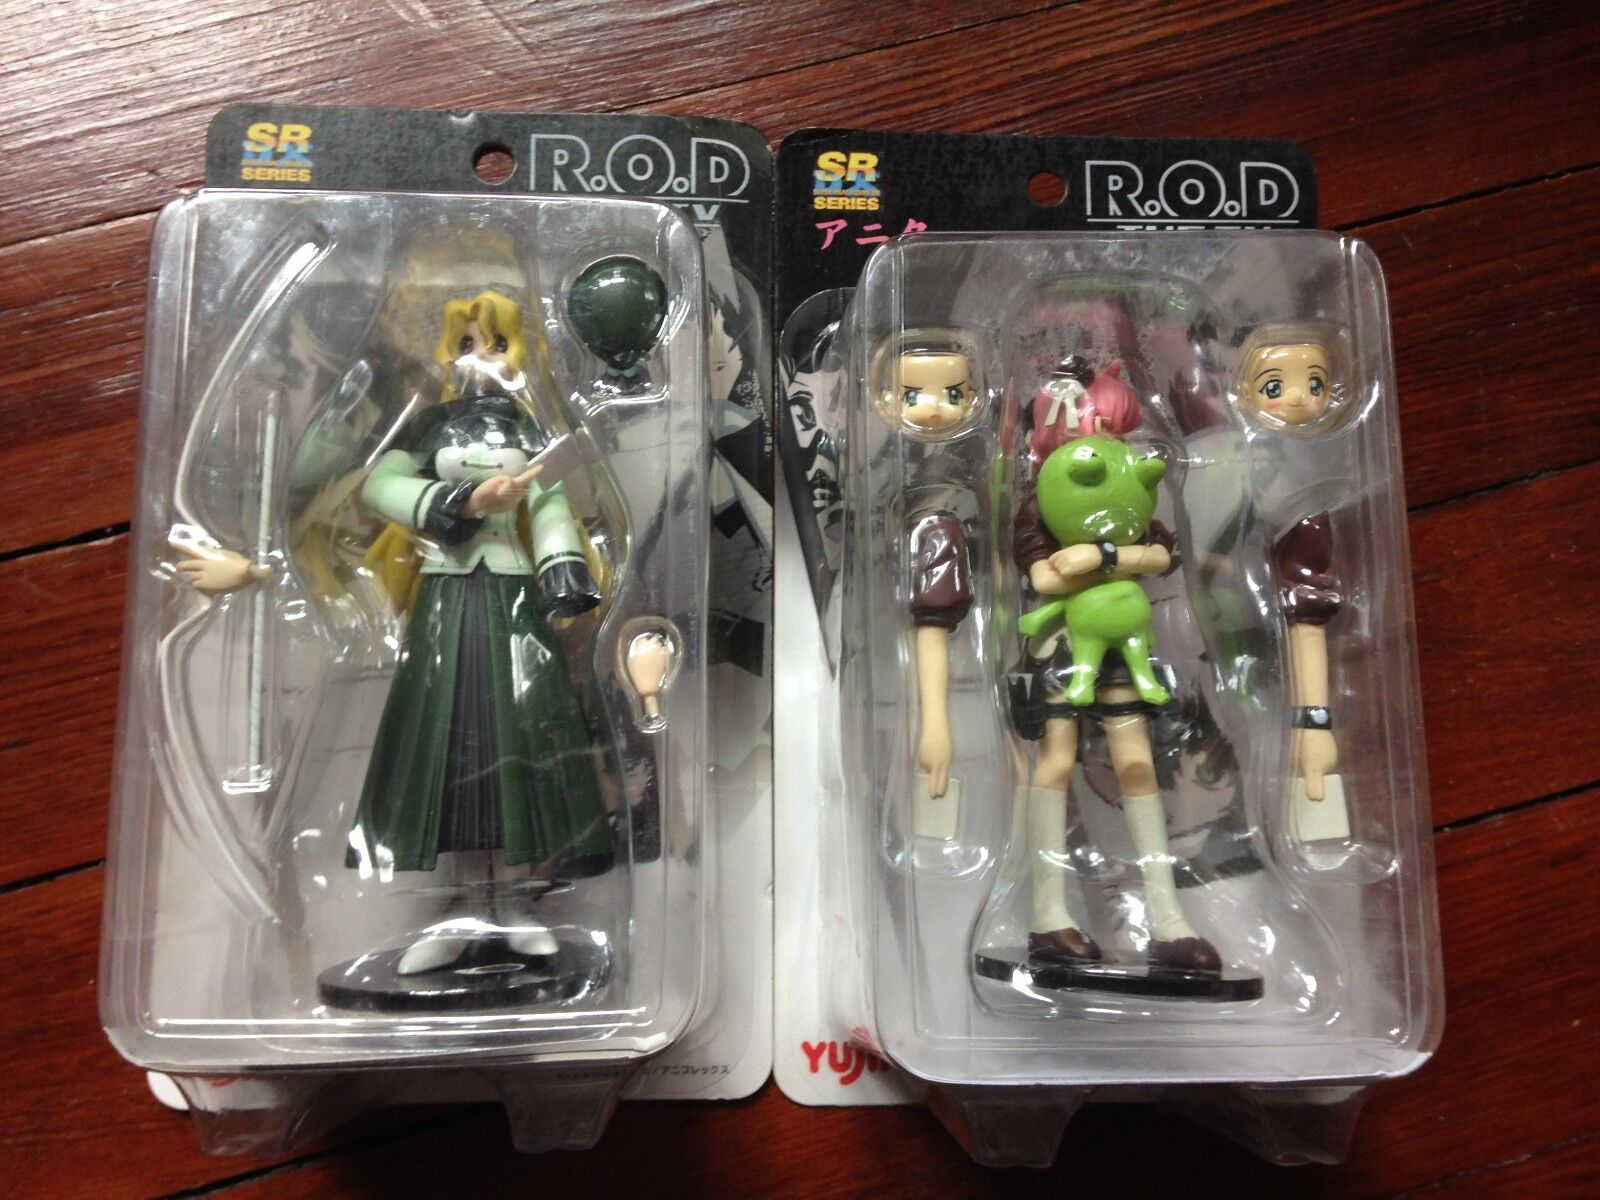 Yujin Super Real Figure DX R.O.D The TV Anita King with Frog Figure and Michelle